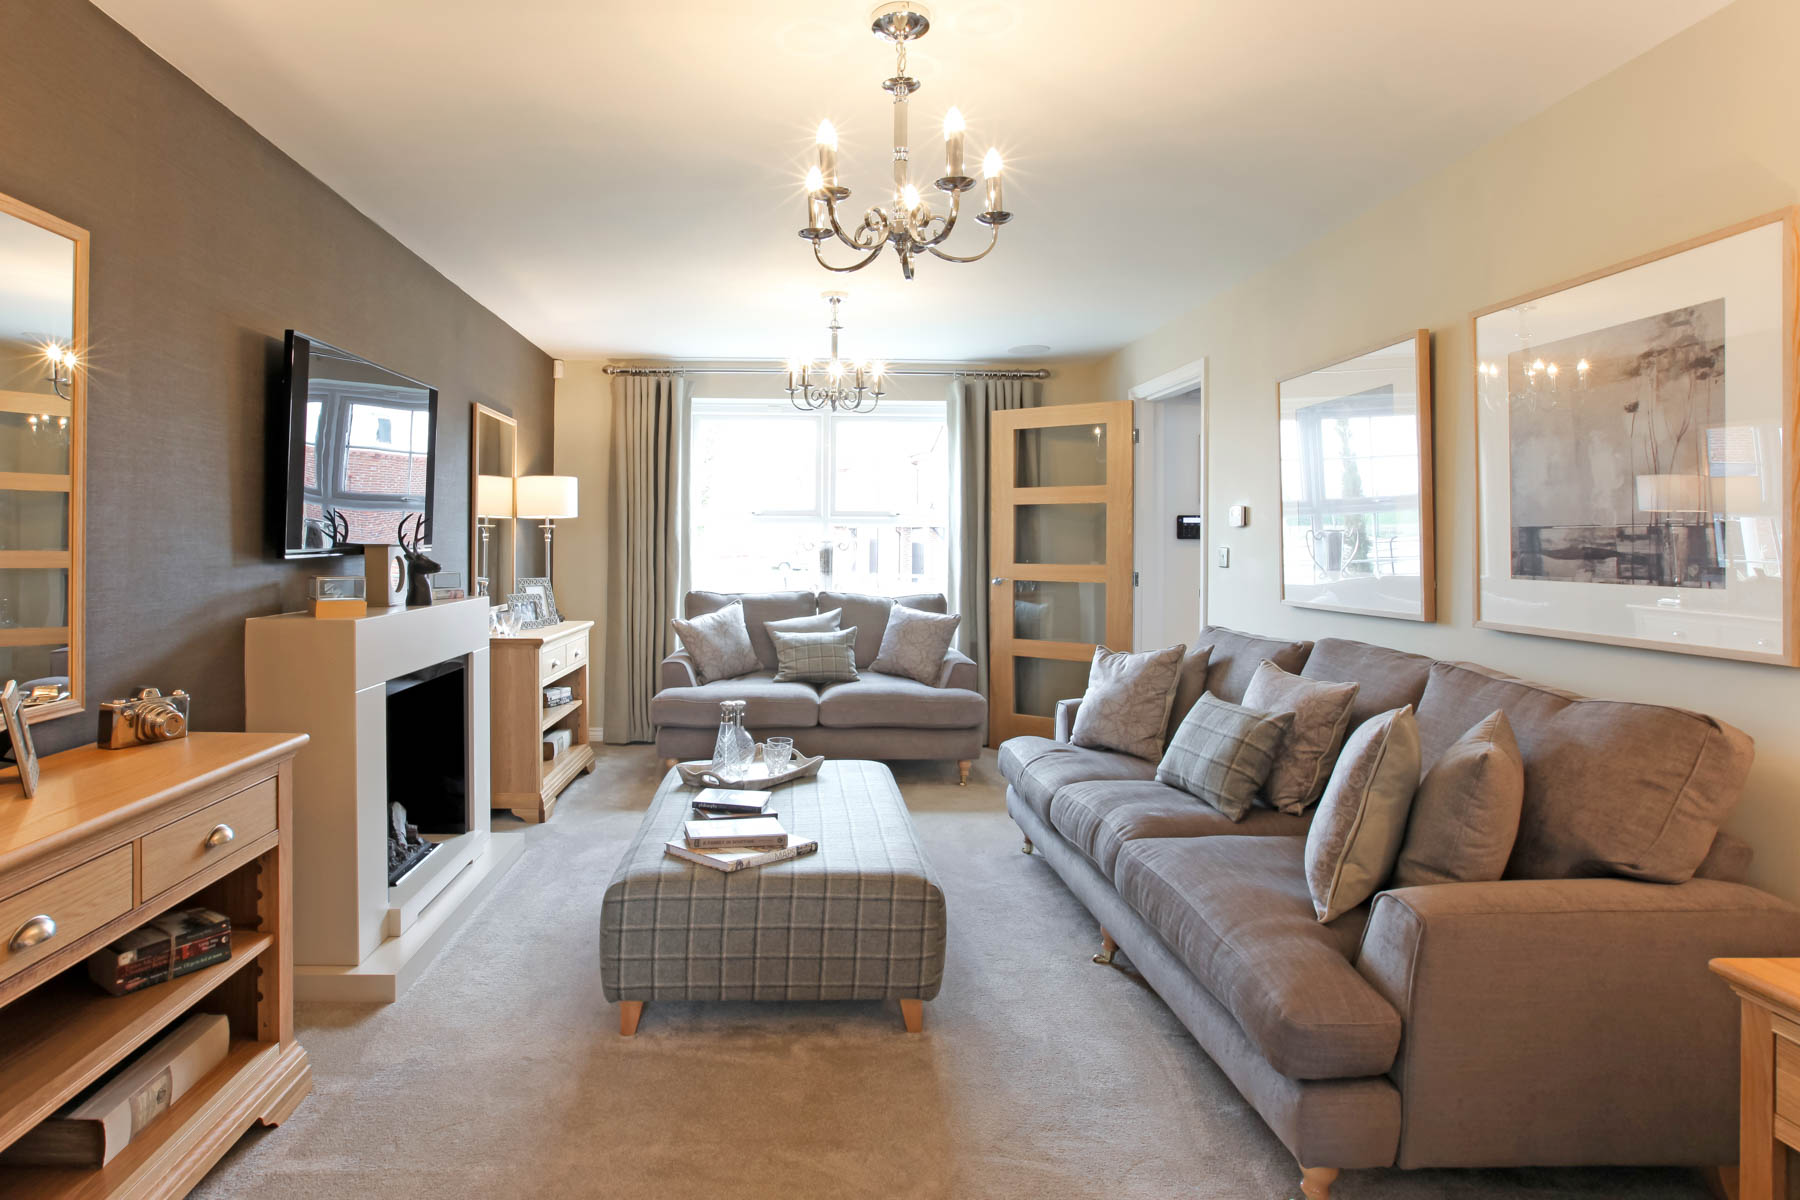 007_PW_Eynsham_Living_Room